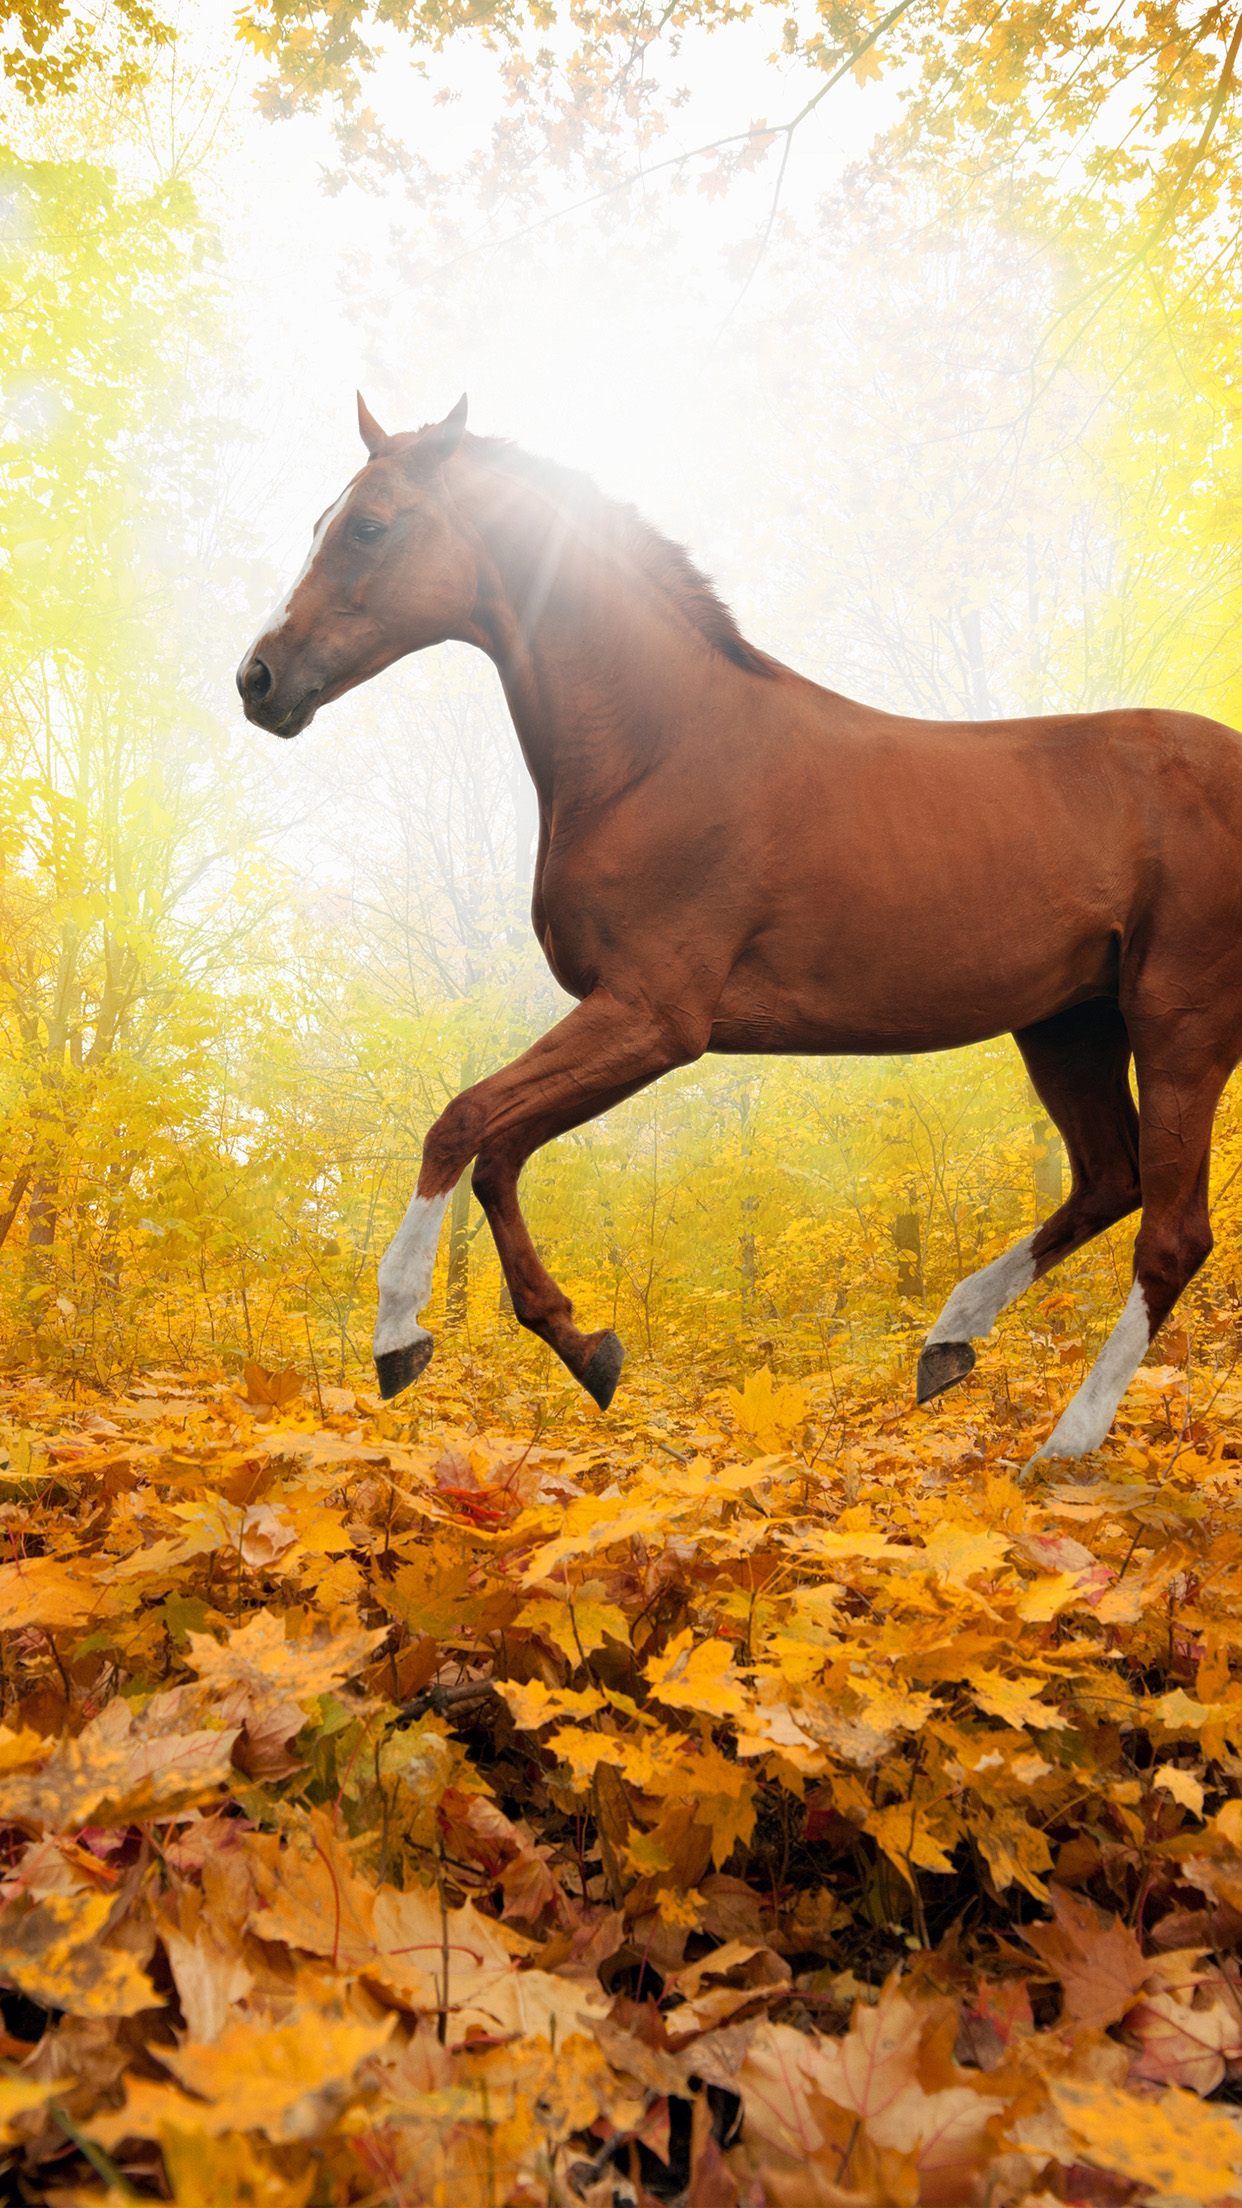 Horse Fall leaf mountain red 3Wallpapers iPhone Parallax Horse: Fall leaf mountain red